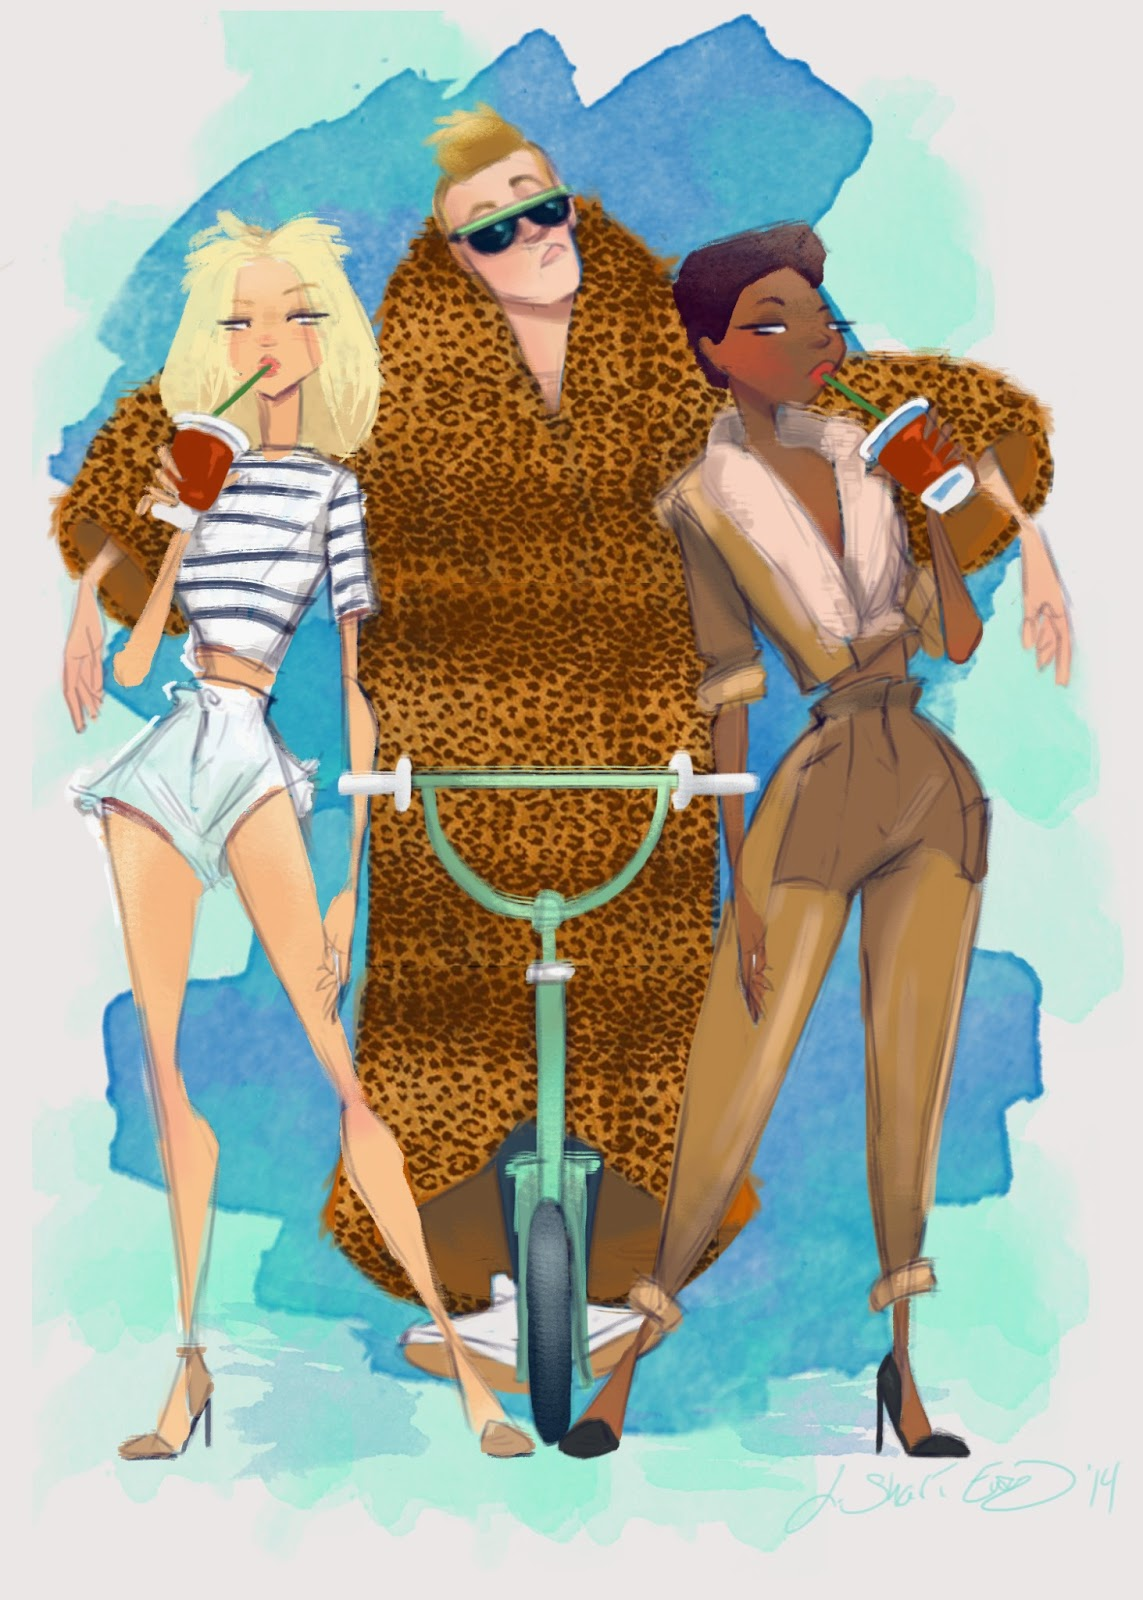 macklemore and ryan lewis thrift shop illustration